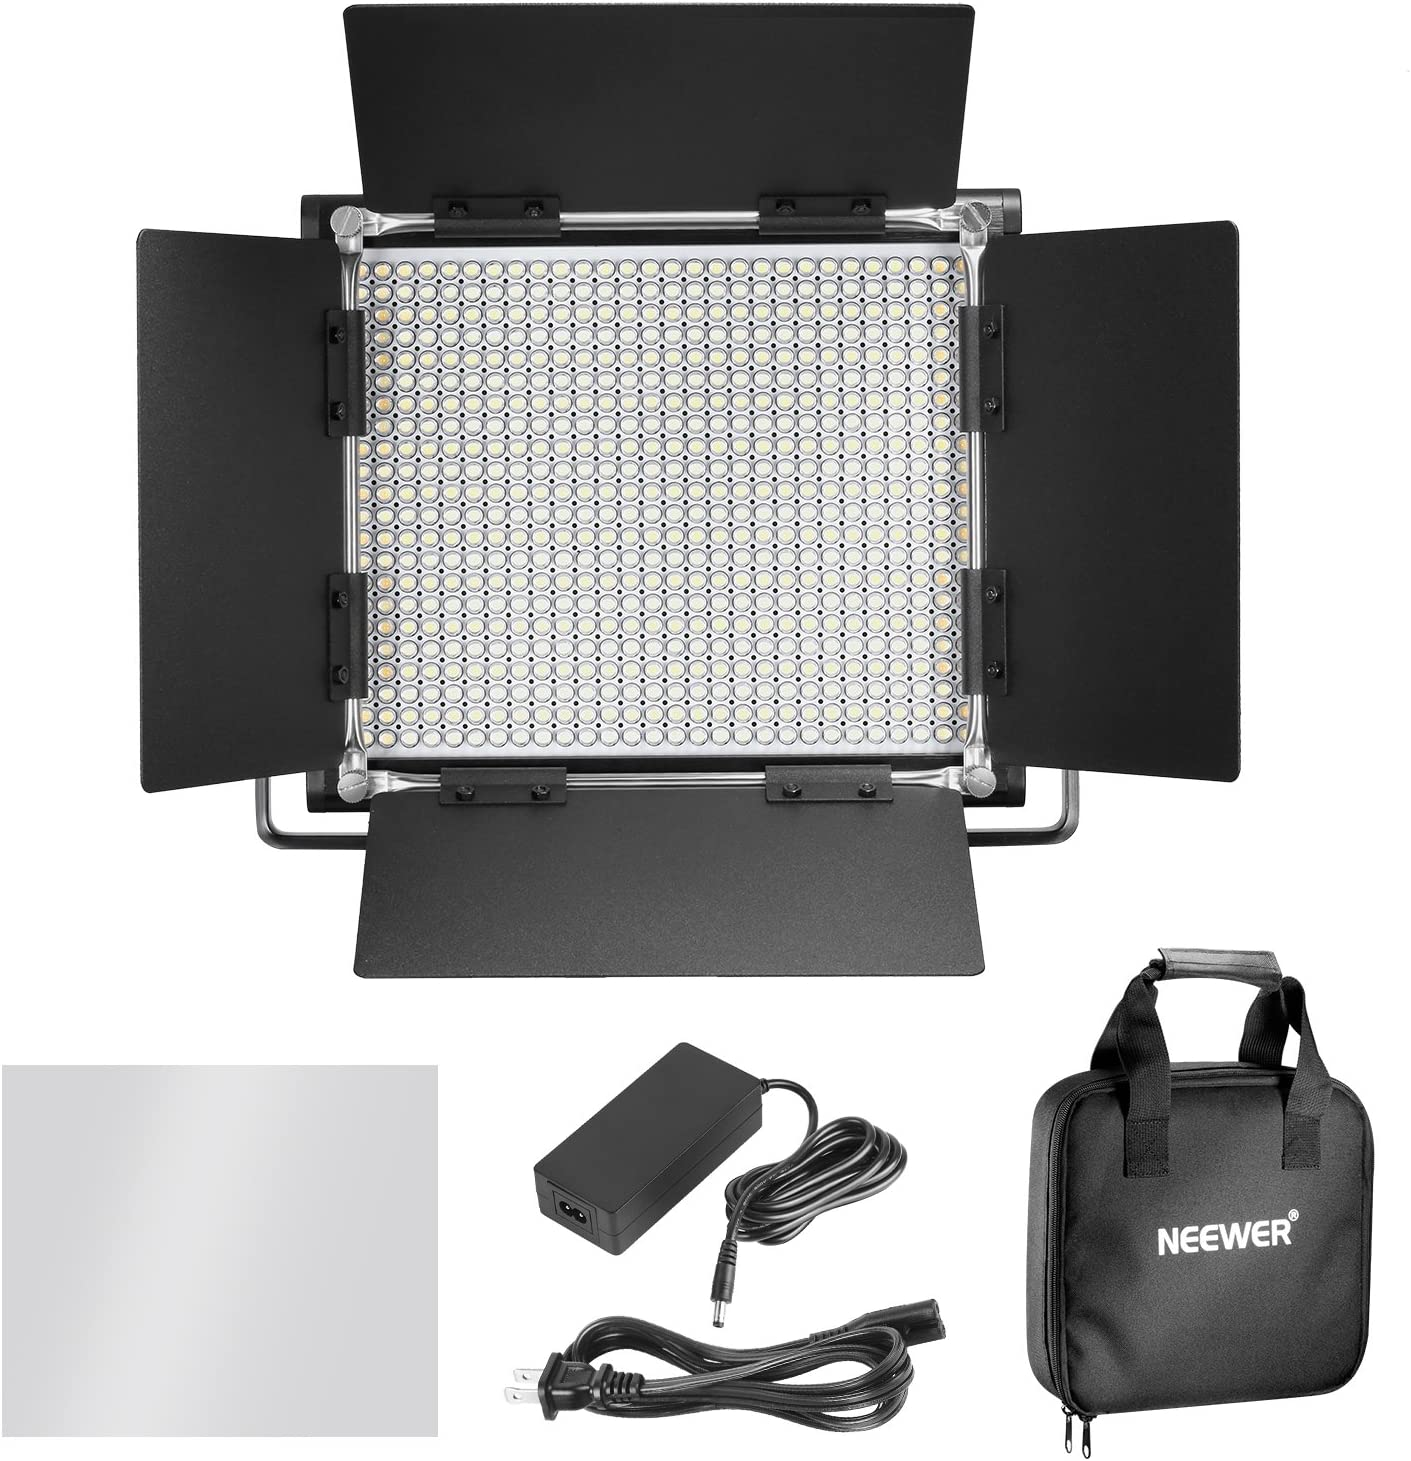 Neewer 2 Packs Advanced 2.4G 660 LED Video Light Photography Lighting Kit 2.4G Wireless Remote and Light Stand for Portrait Product Photography Dimmable Bi-Color LED Panel with LCD Screen